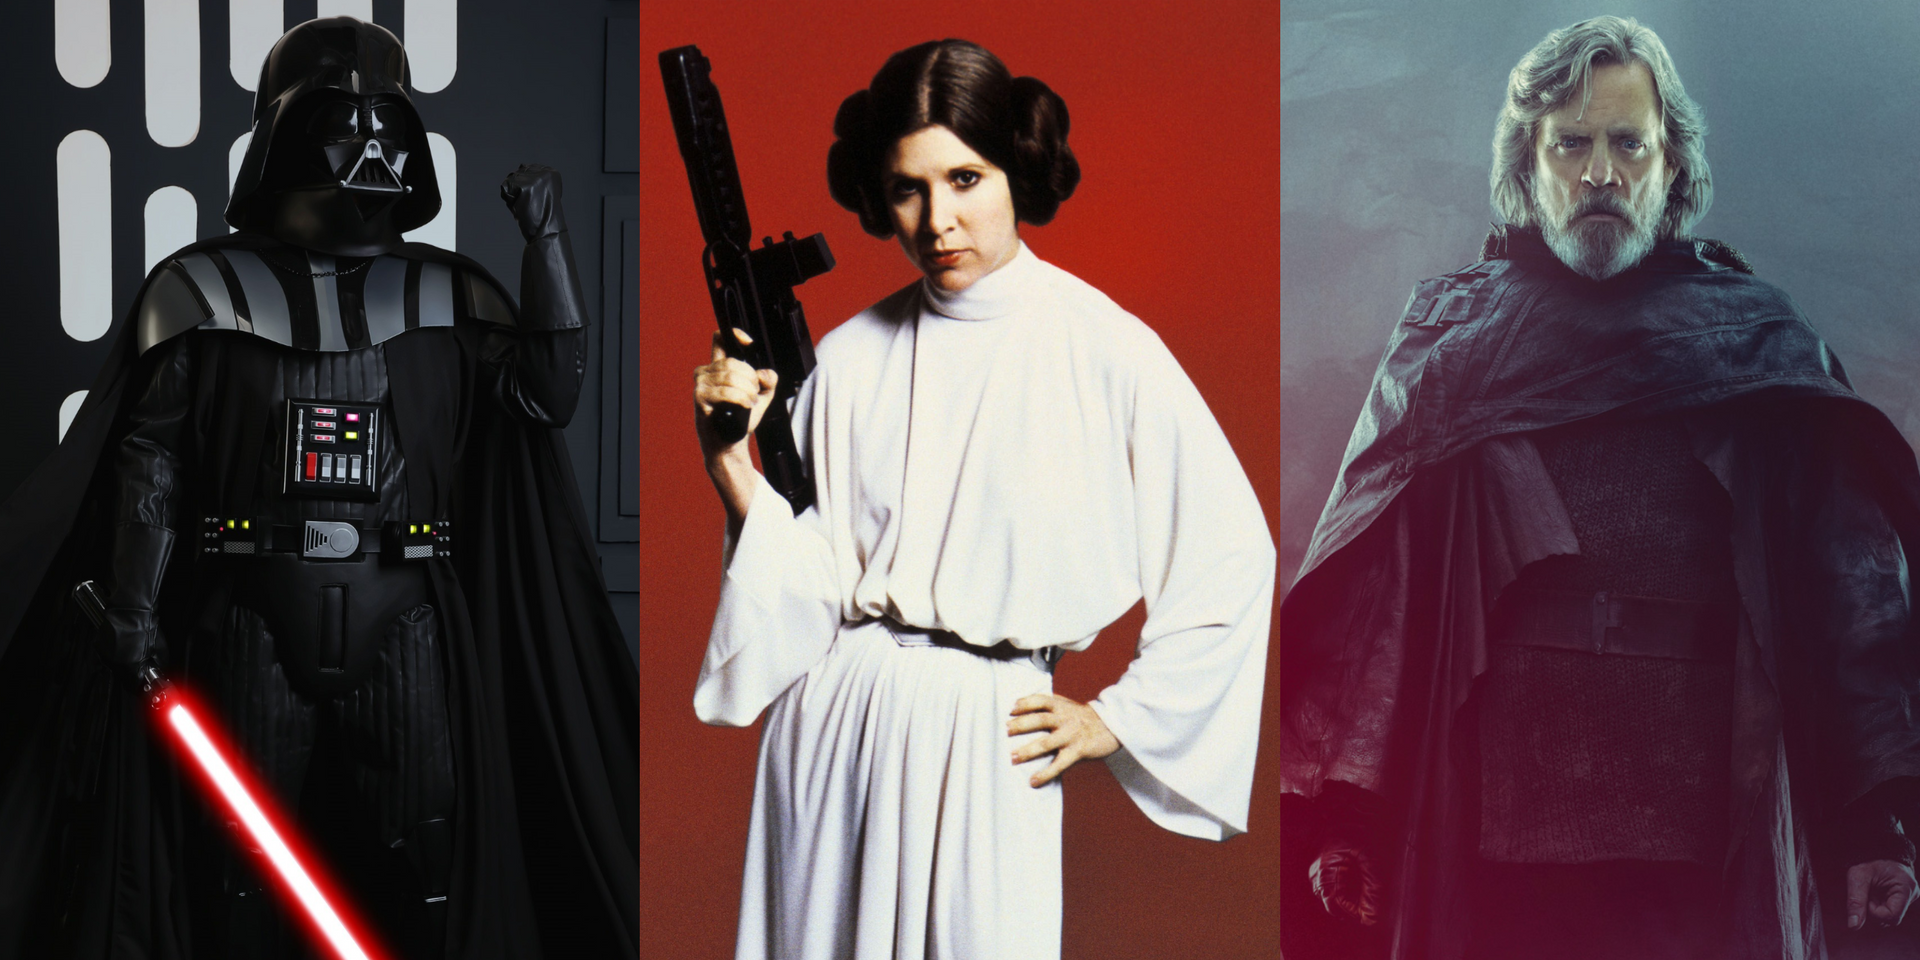 Which Star Wars character are you? Take this quiz to find out ahead of SSO's The Music of Star Wars performances this December